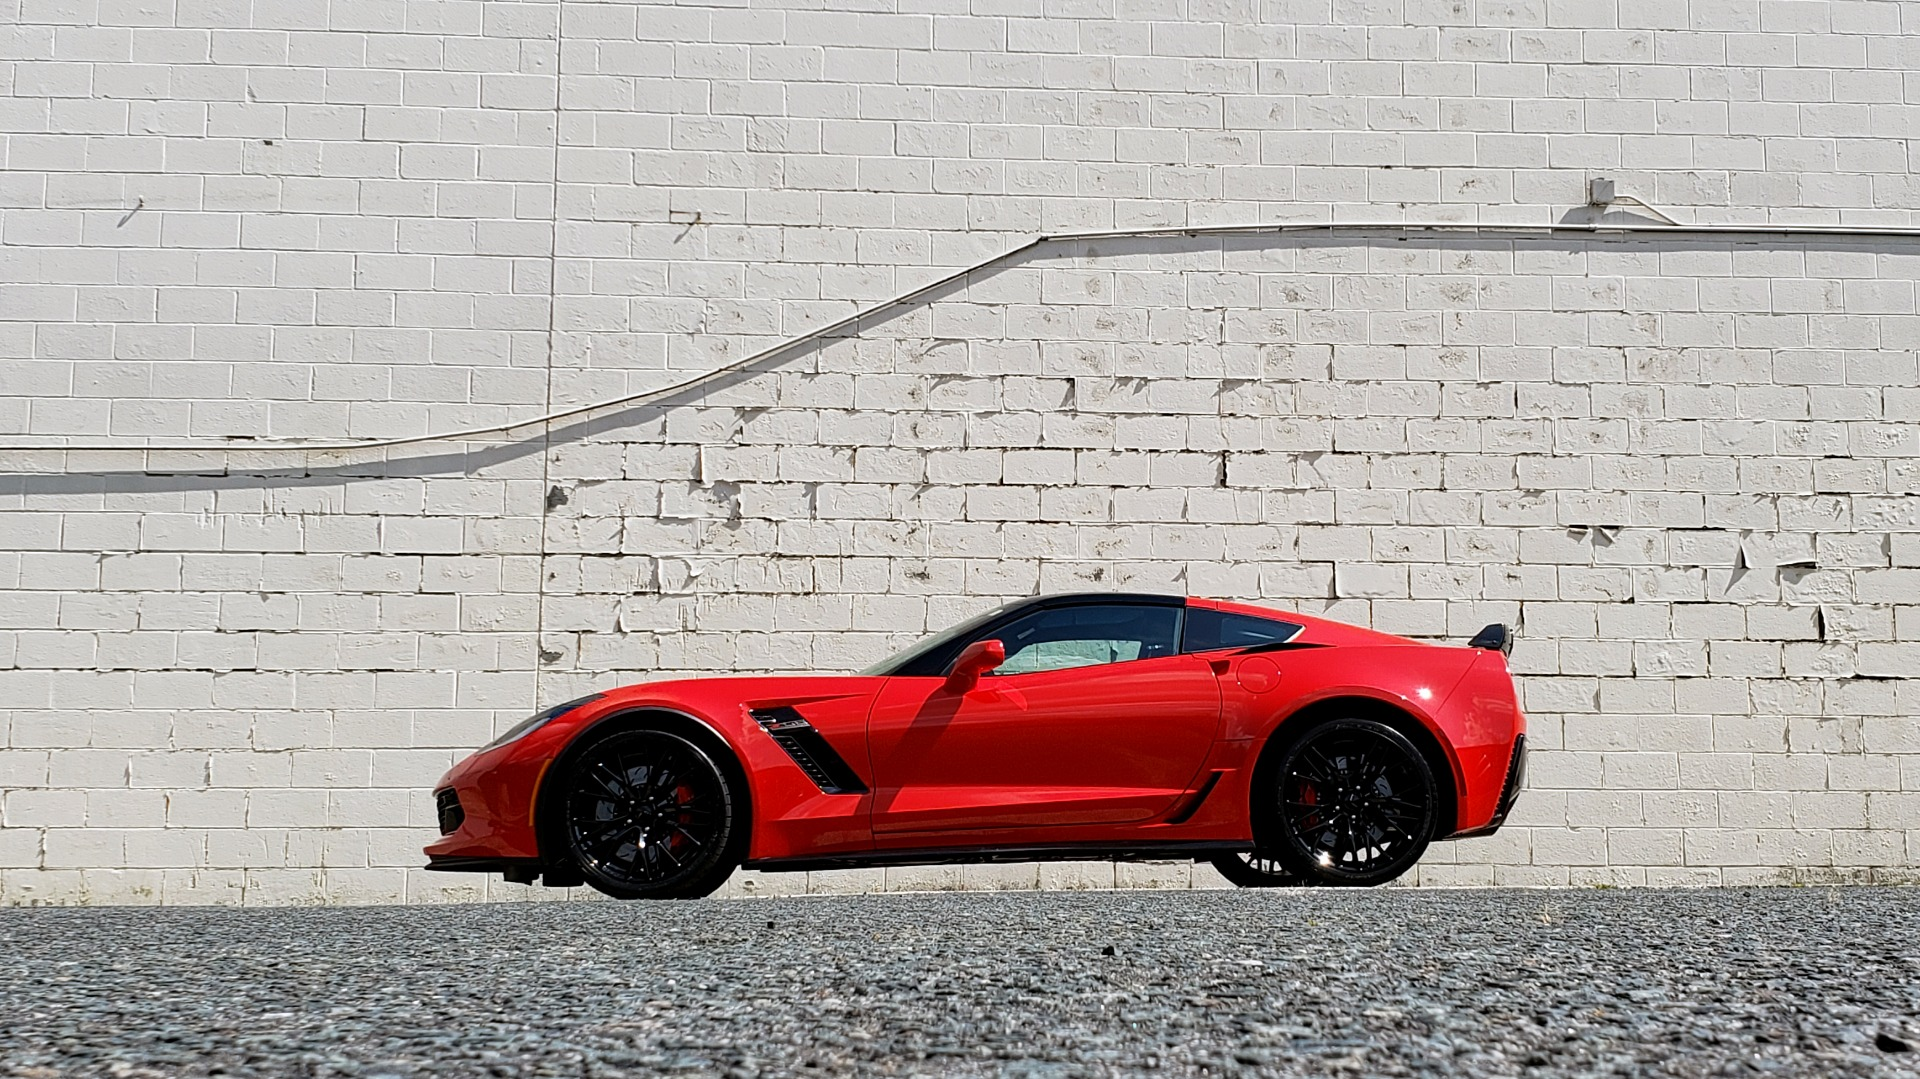 Used 2016 Chevrolet CORVETTE Z06 3LZ / 6.2L SUPERCHARGED 650HP / NAV / BOSE / REARVIEW for sale Sold at Formula Imports in Charlotte NC 28227 81